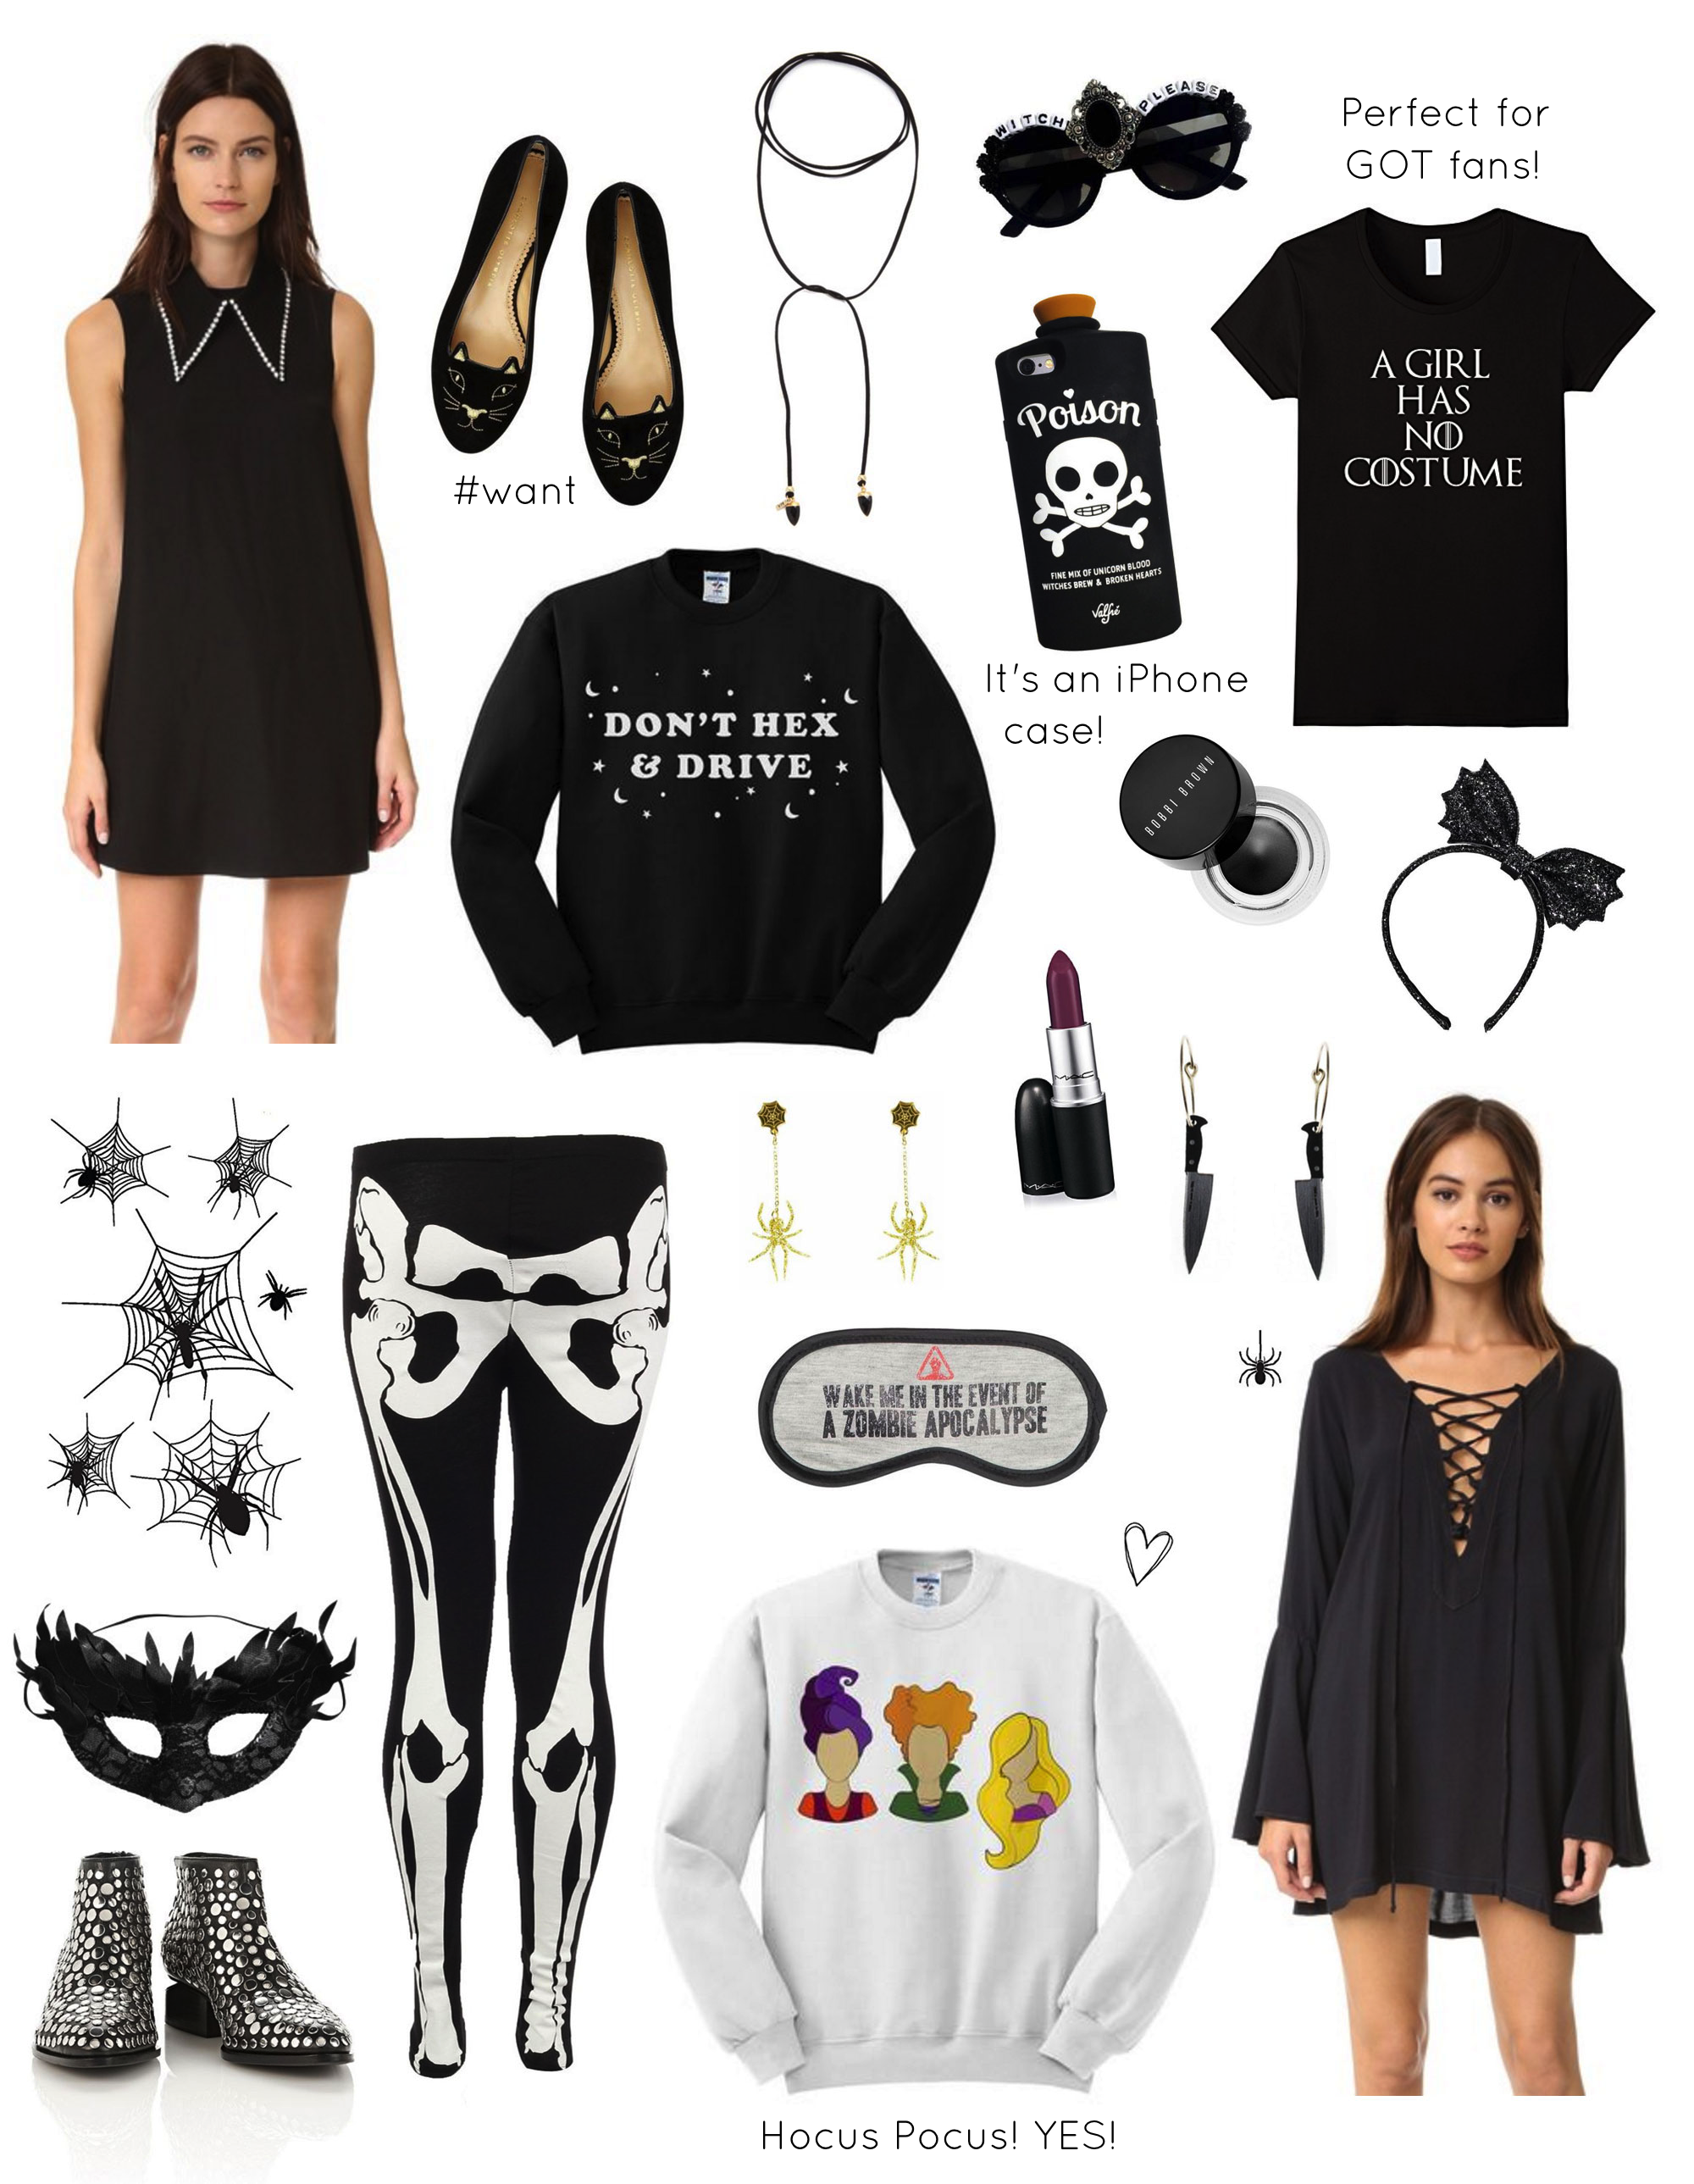 How To Look Cool On Halloween Without Really Quot Dressing Up Quot Glitter Inc Glitter Inc